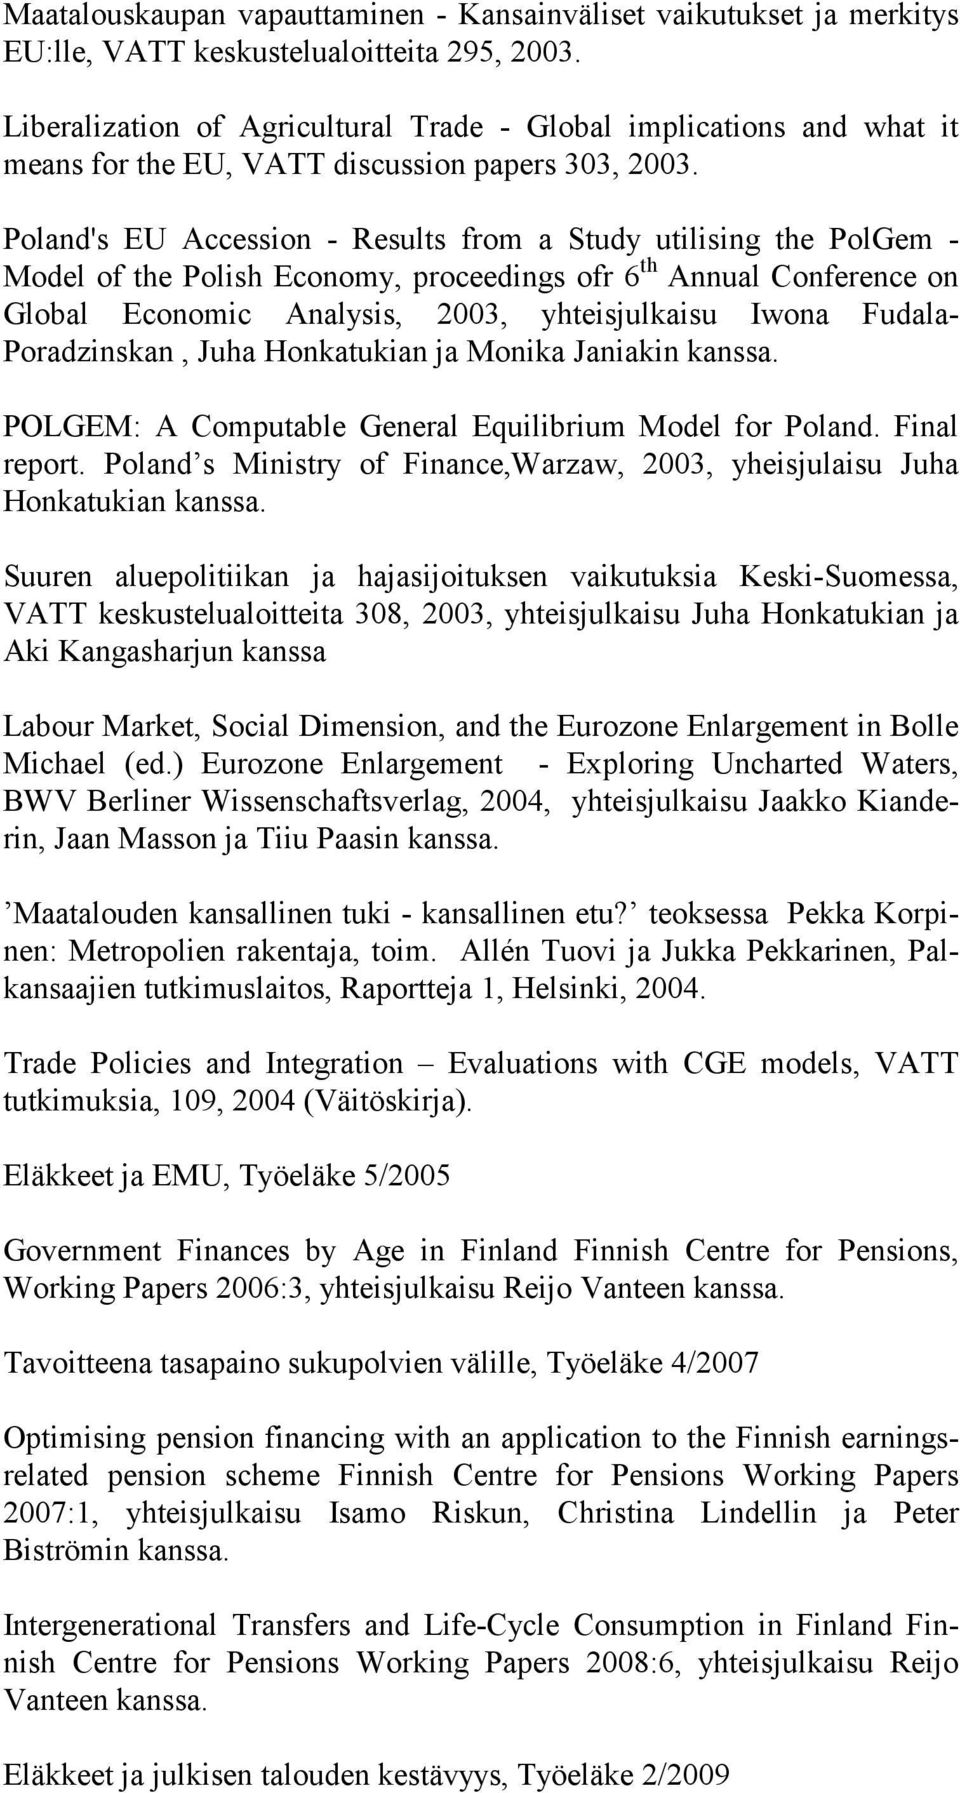 Poland's EU Accession - Results from a Study utilising the PolGem - Model of the Polish Economy, proceedings ofr 6 th Annual Conference on Global Economic Analysis, 2003, yhteisjulkaisu Iwona Fudala-